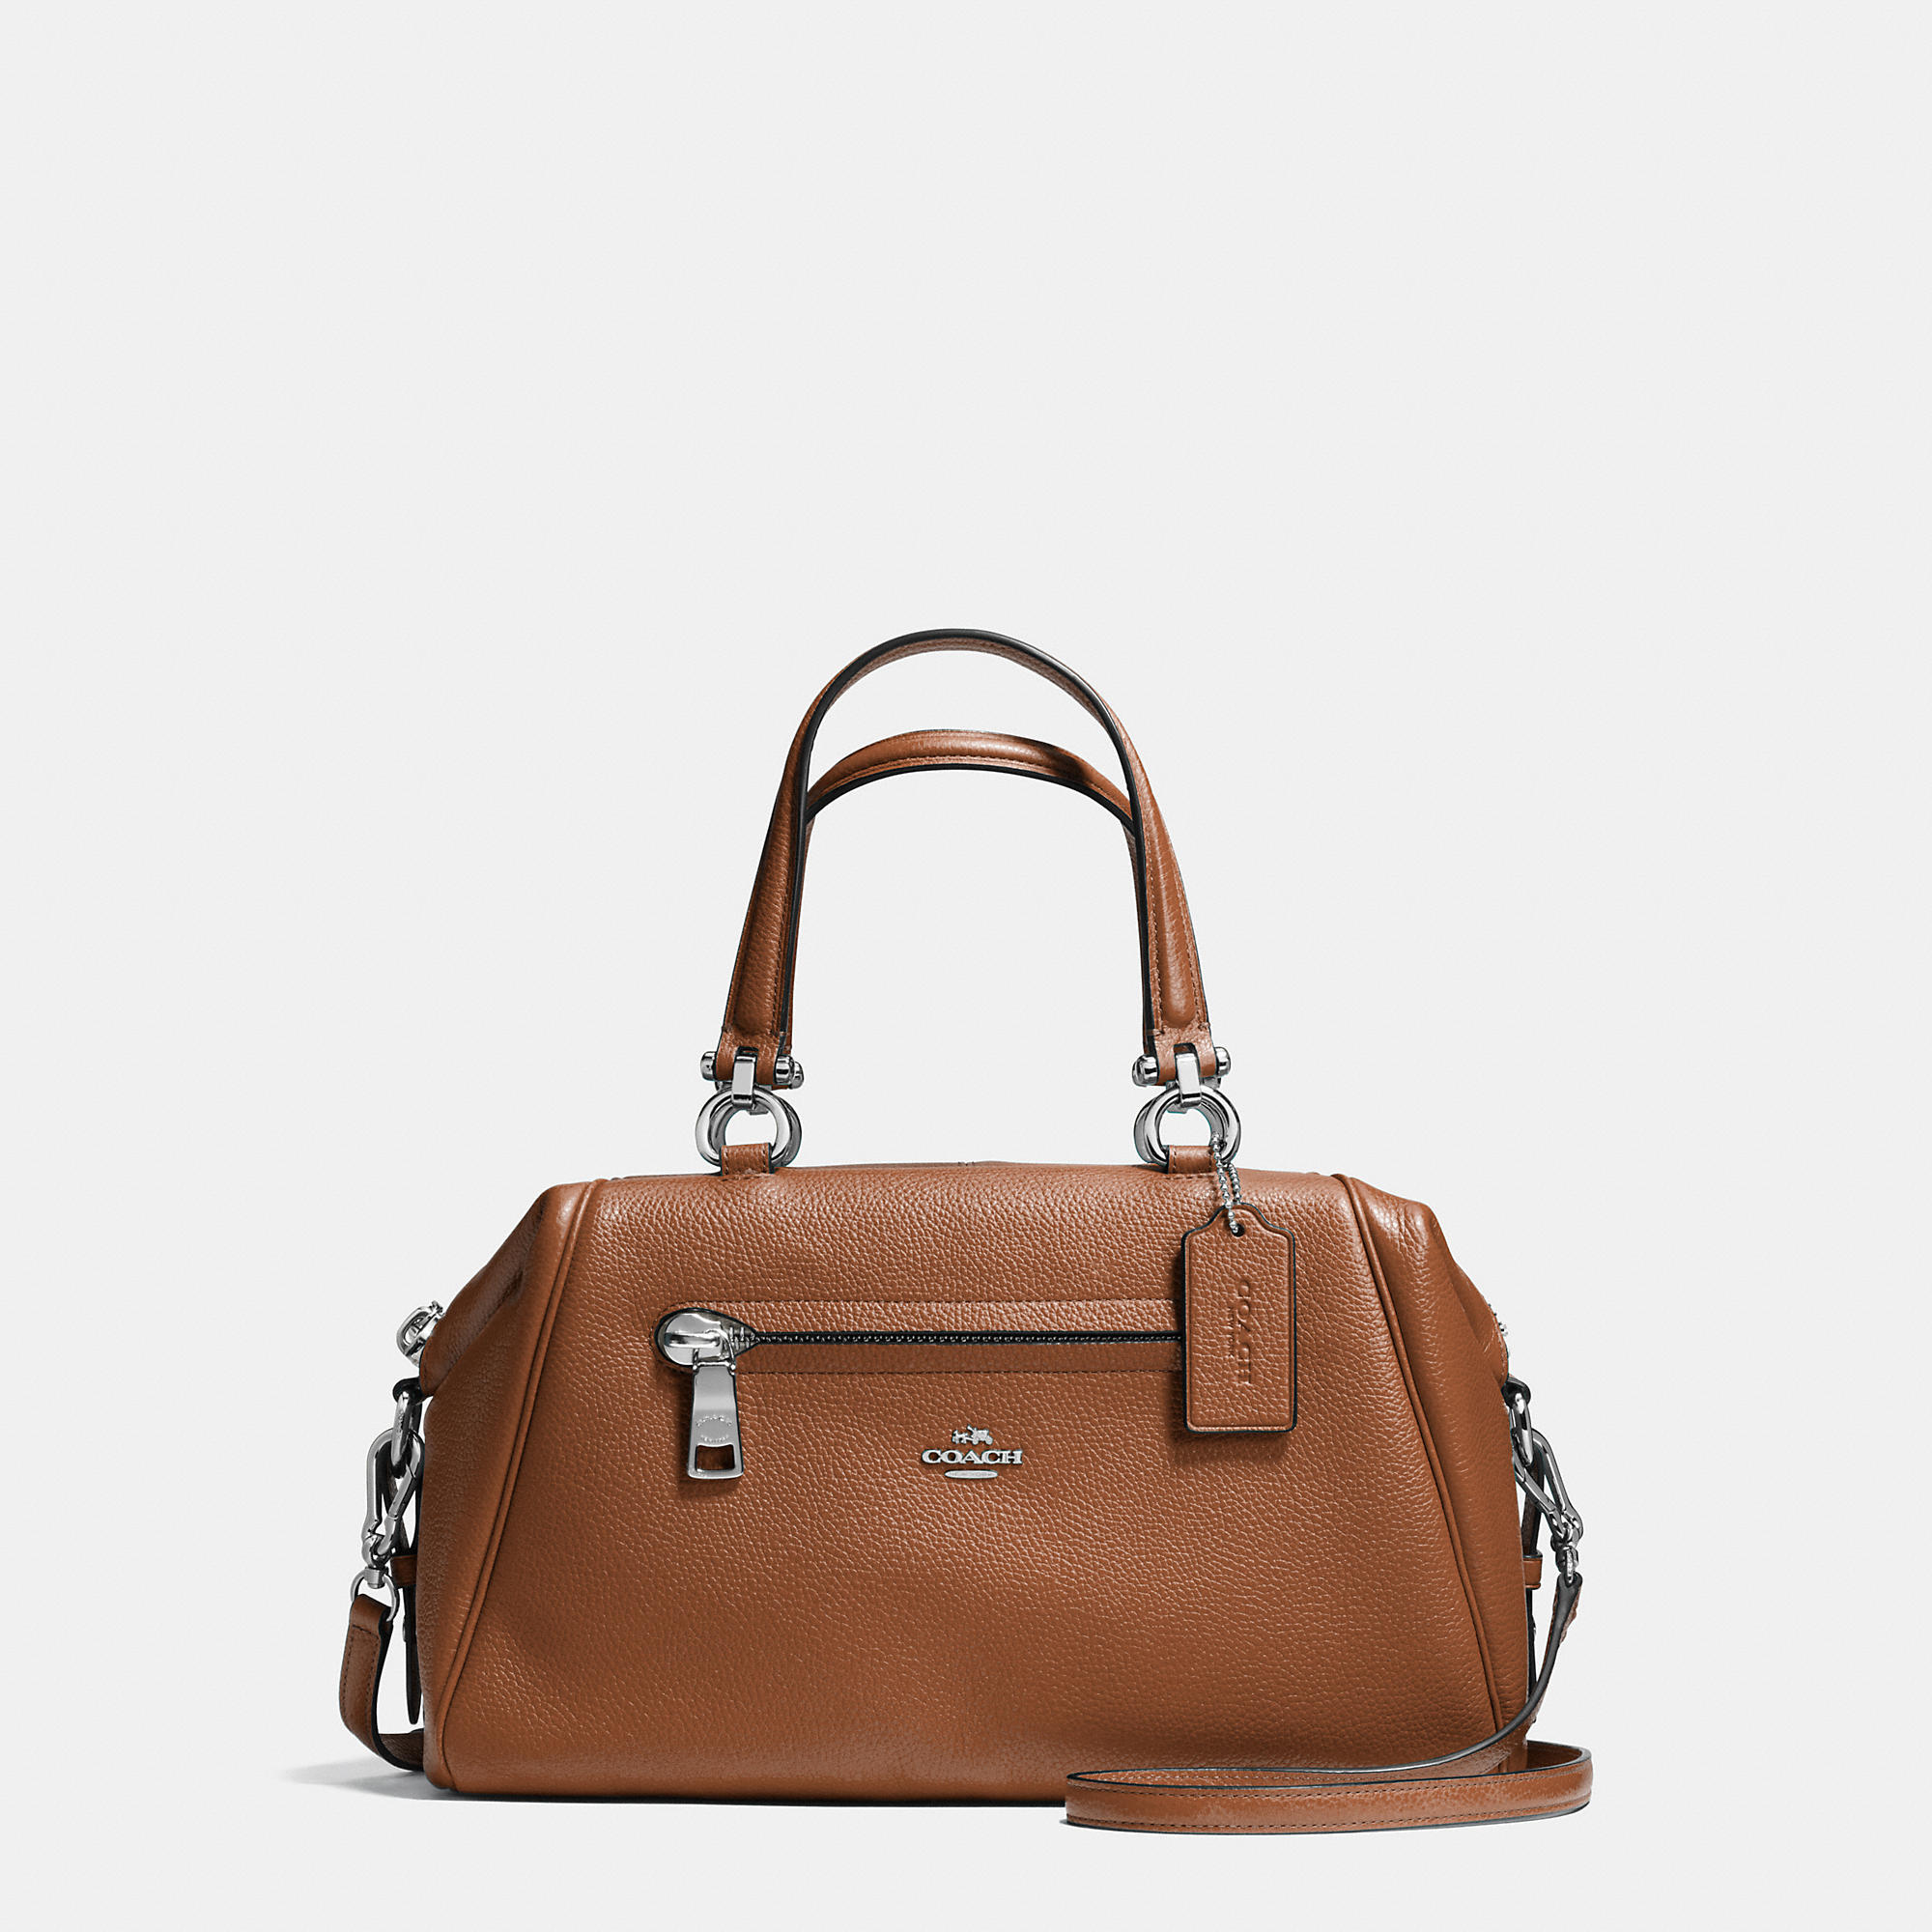 Coach Primrose Satchel In Pebble Leather In Silver/saddle